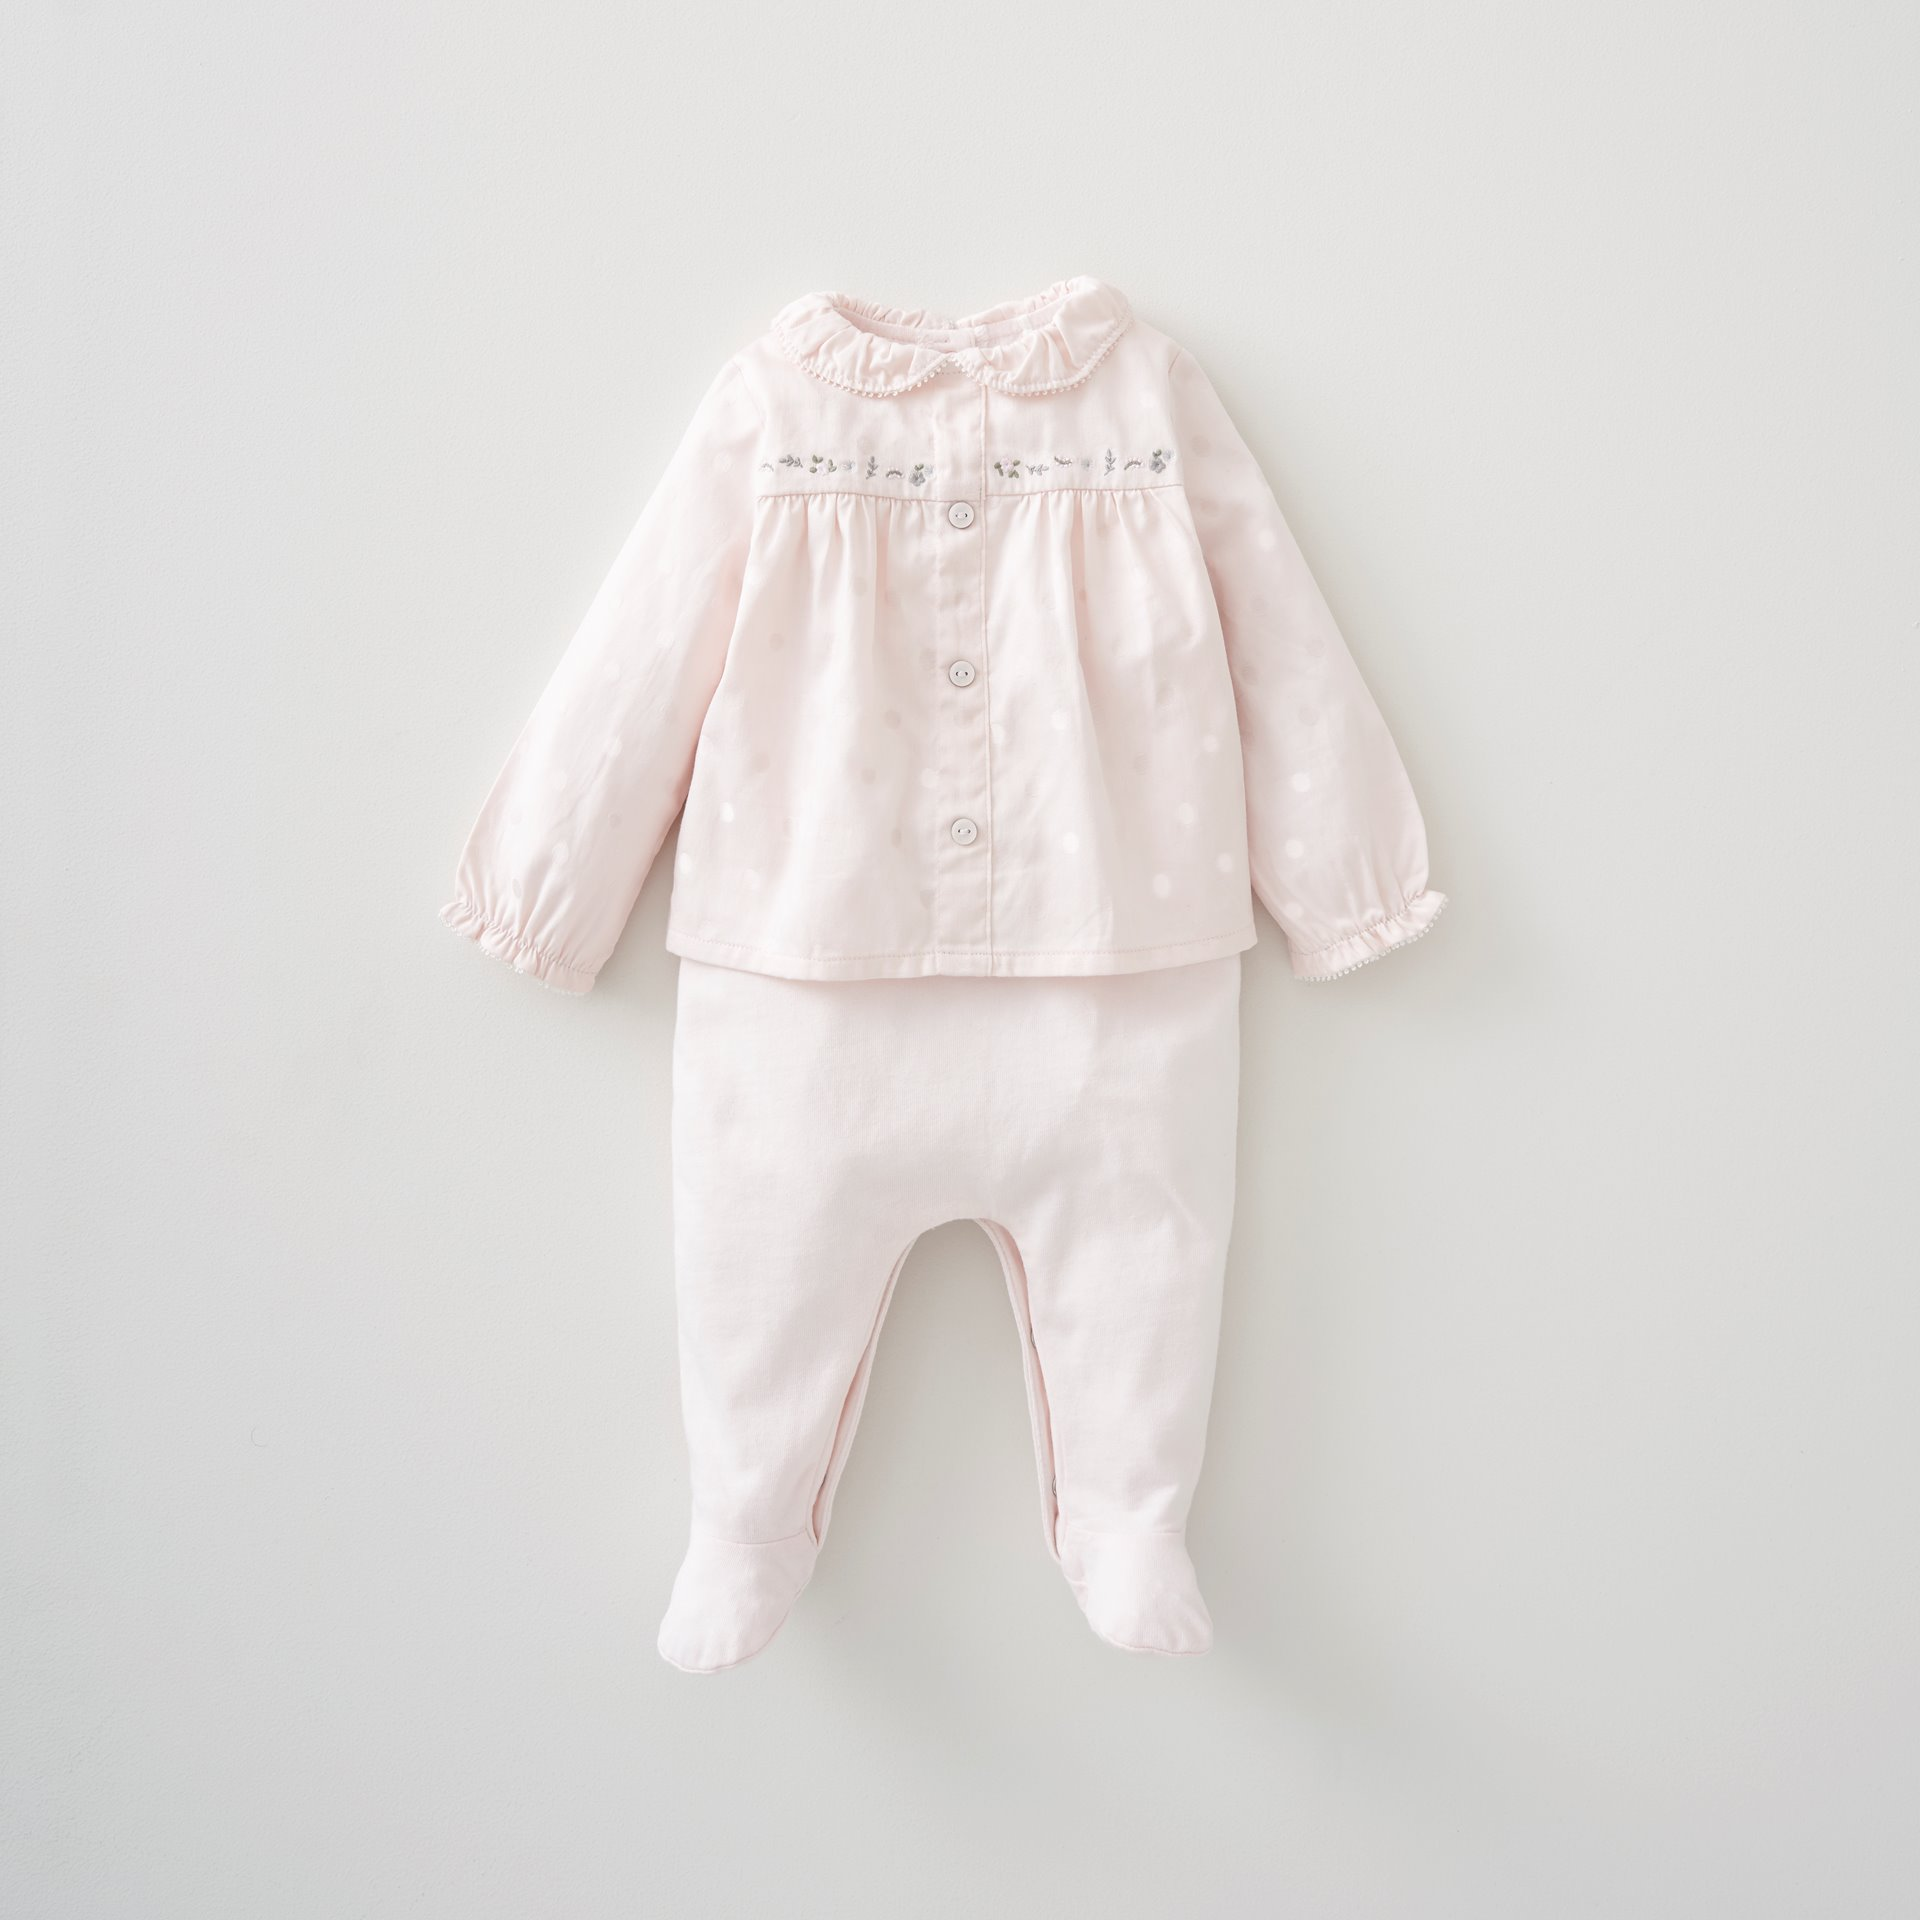 Jacquard Blouse All in One 6-9 Months